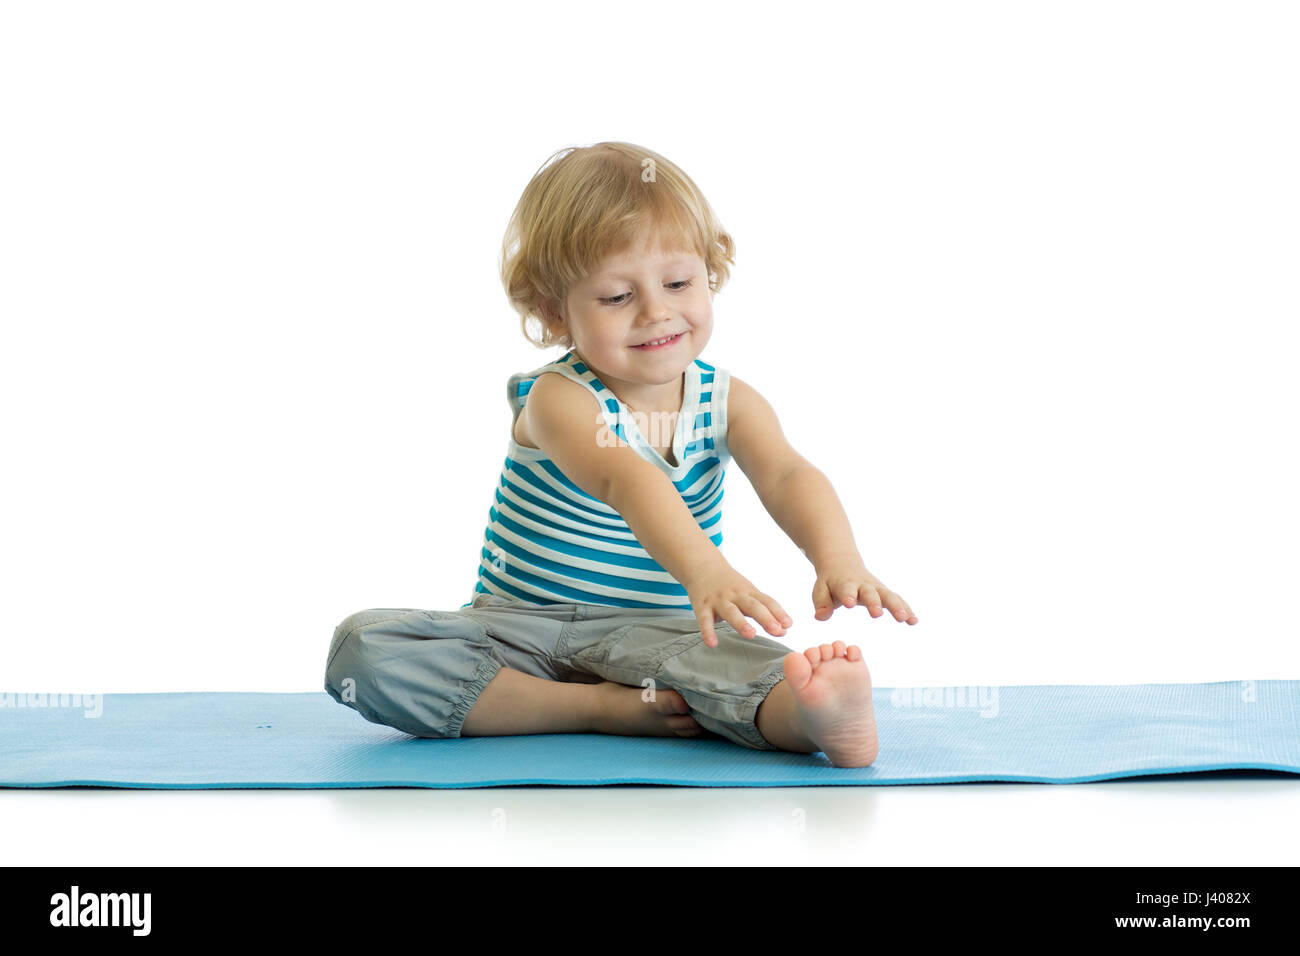 Kid child doing a set of exercises for stretching. - Stock Image